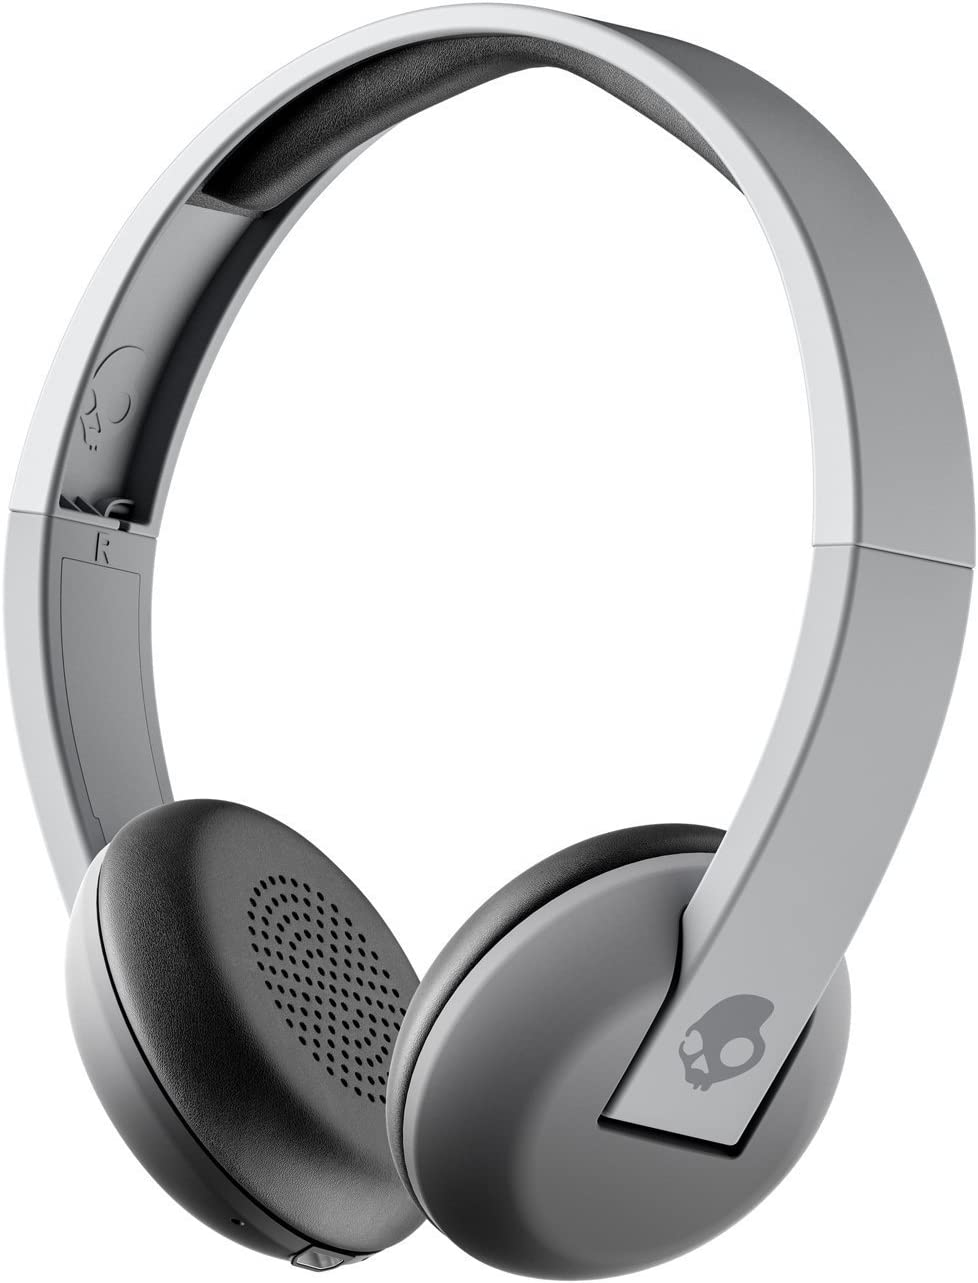 Skullcandy Uproar Wireless On-Ear Headphone - White/Grey